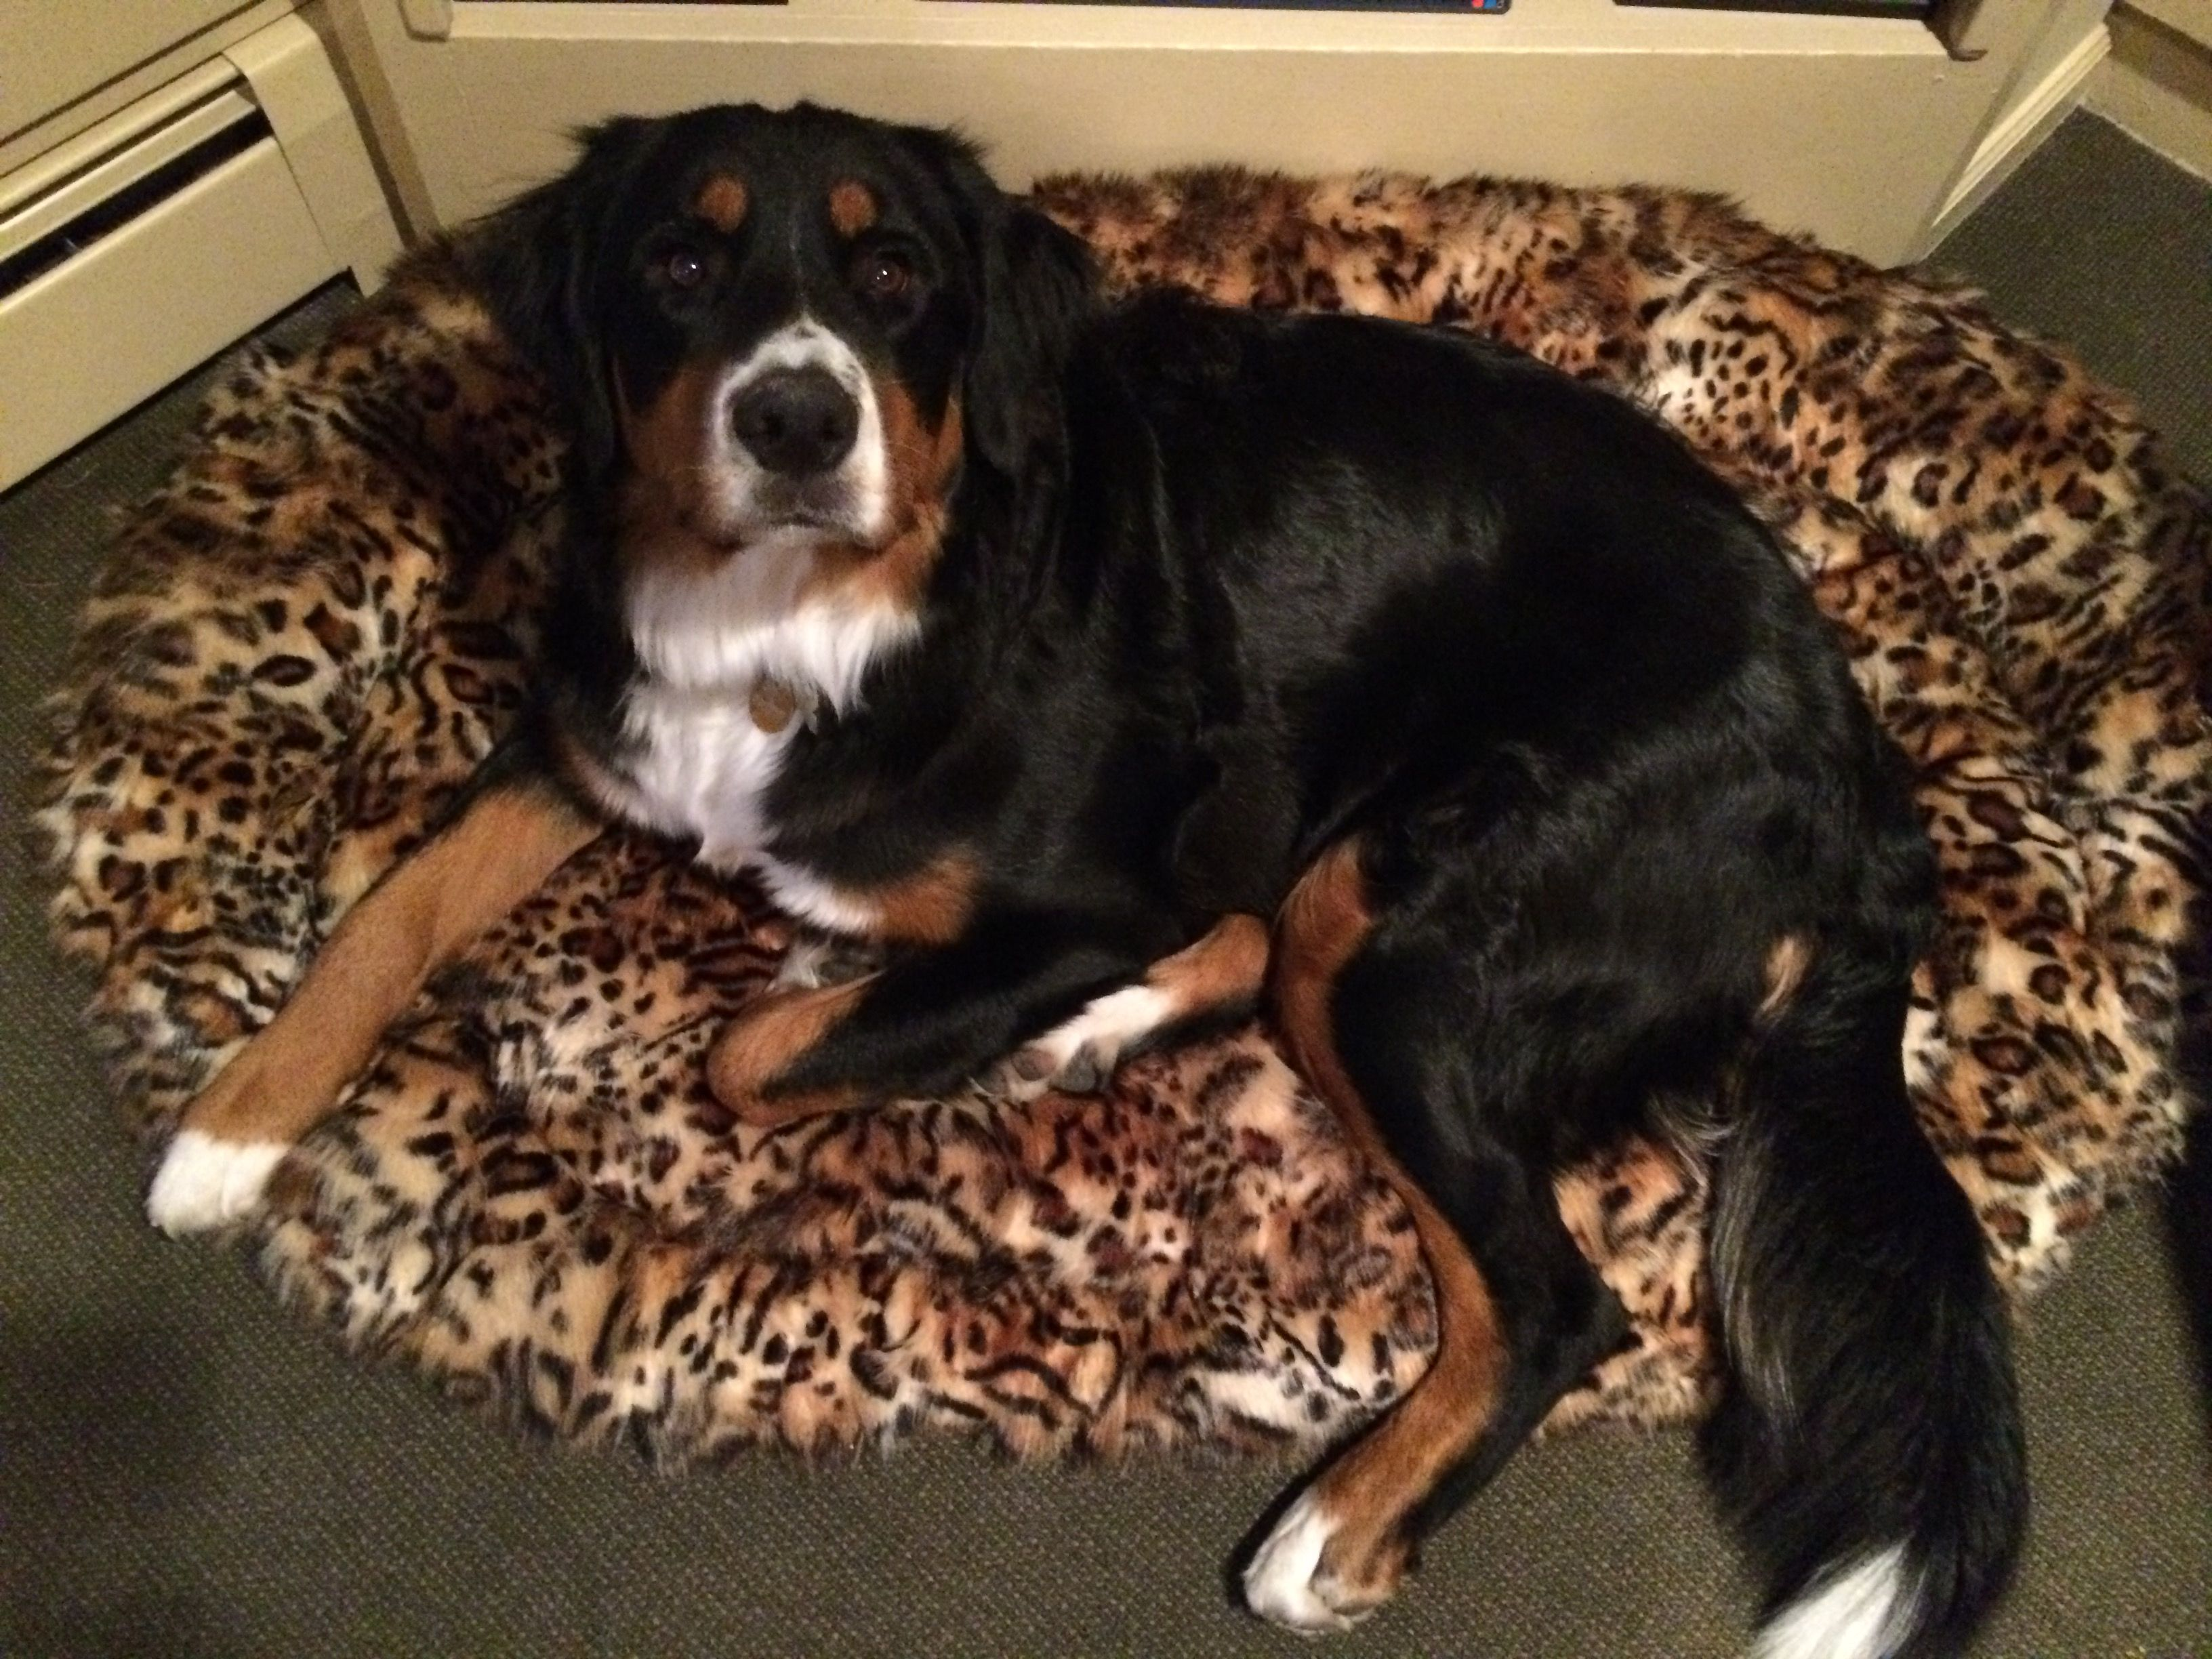 Bernese Mountain Dog on our new custom-made Nike Lounger. Contact Elaine at info@thepuppyhugger.com & order one for your dog!